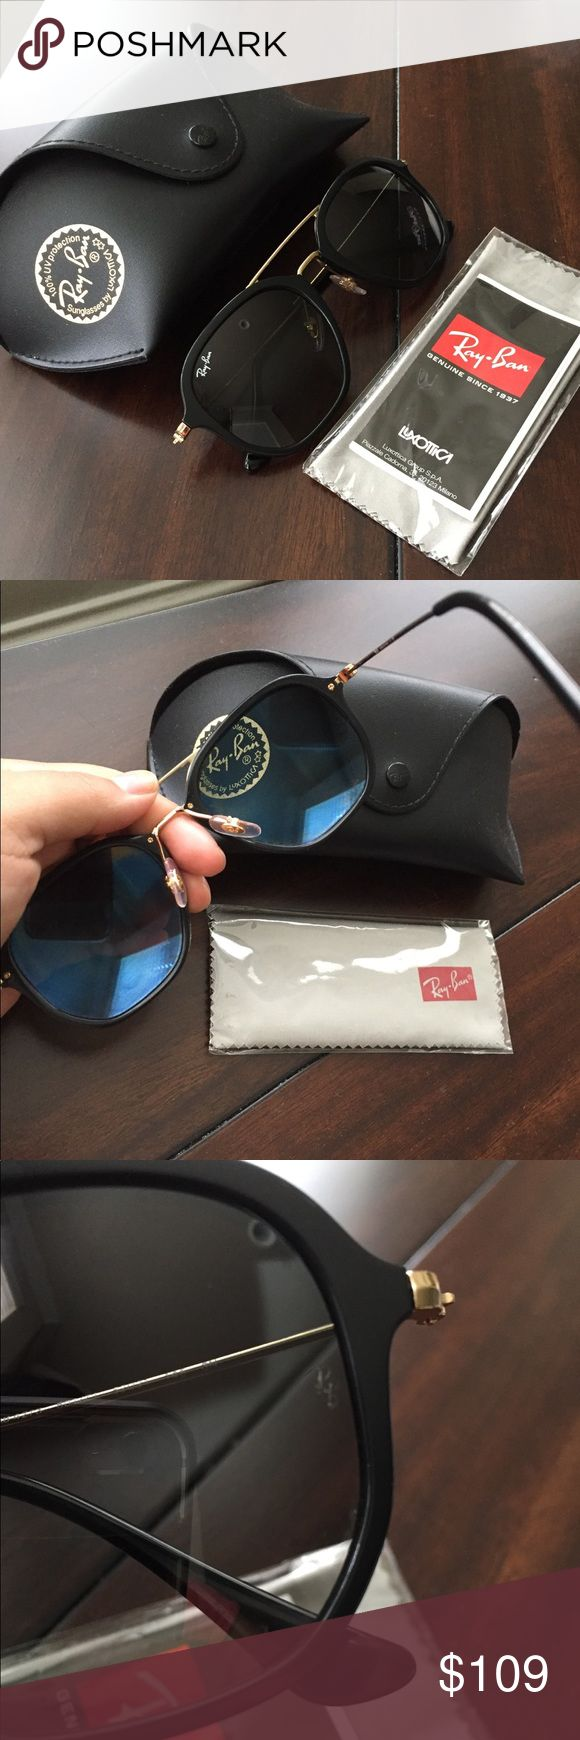 🔥 HOT BUY 🔥 Ray-Ban sum glasses Ray-Ban sun glasses in black and gold. Excellent condition. Comes with box and glasses wipe and instructions. Beautiful design and 100% authentic. No fakes on my page ever. Ray-Ban like new glasses. Ray-Ban Accessories Glasses